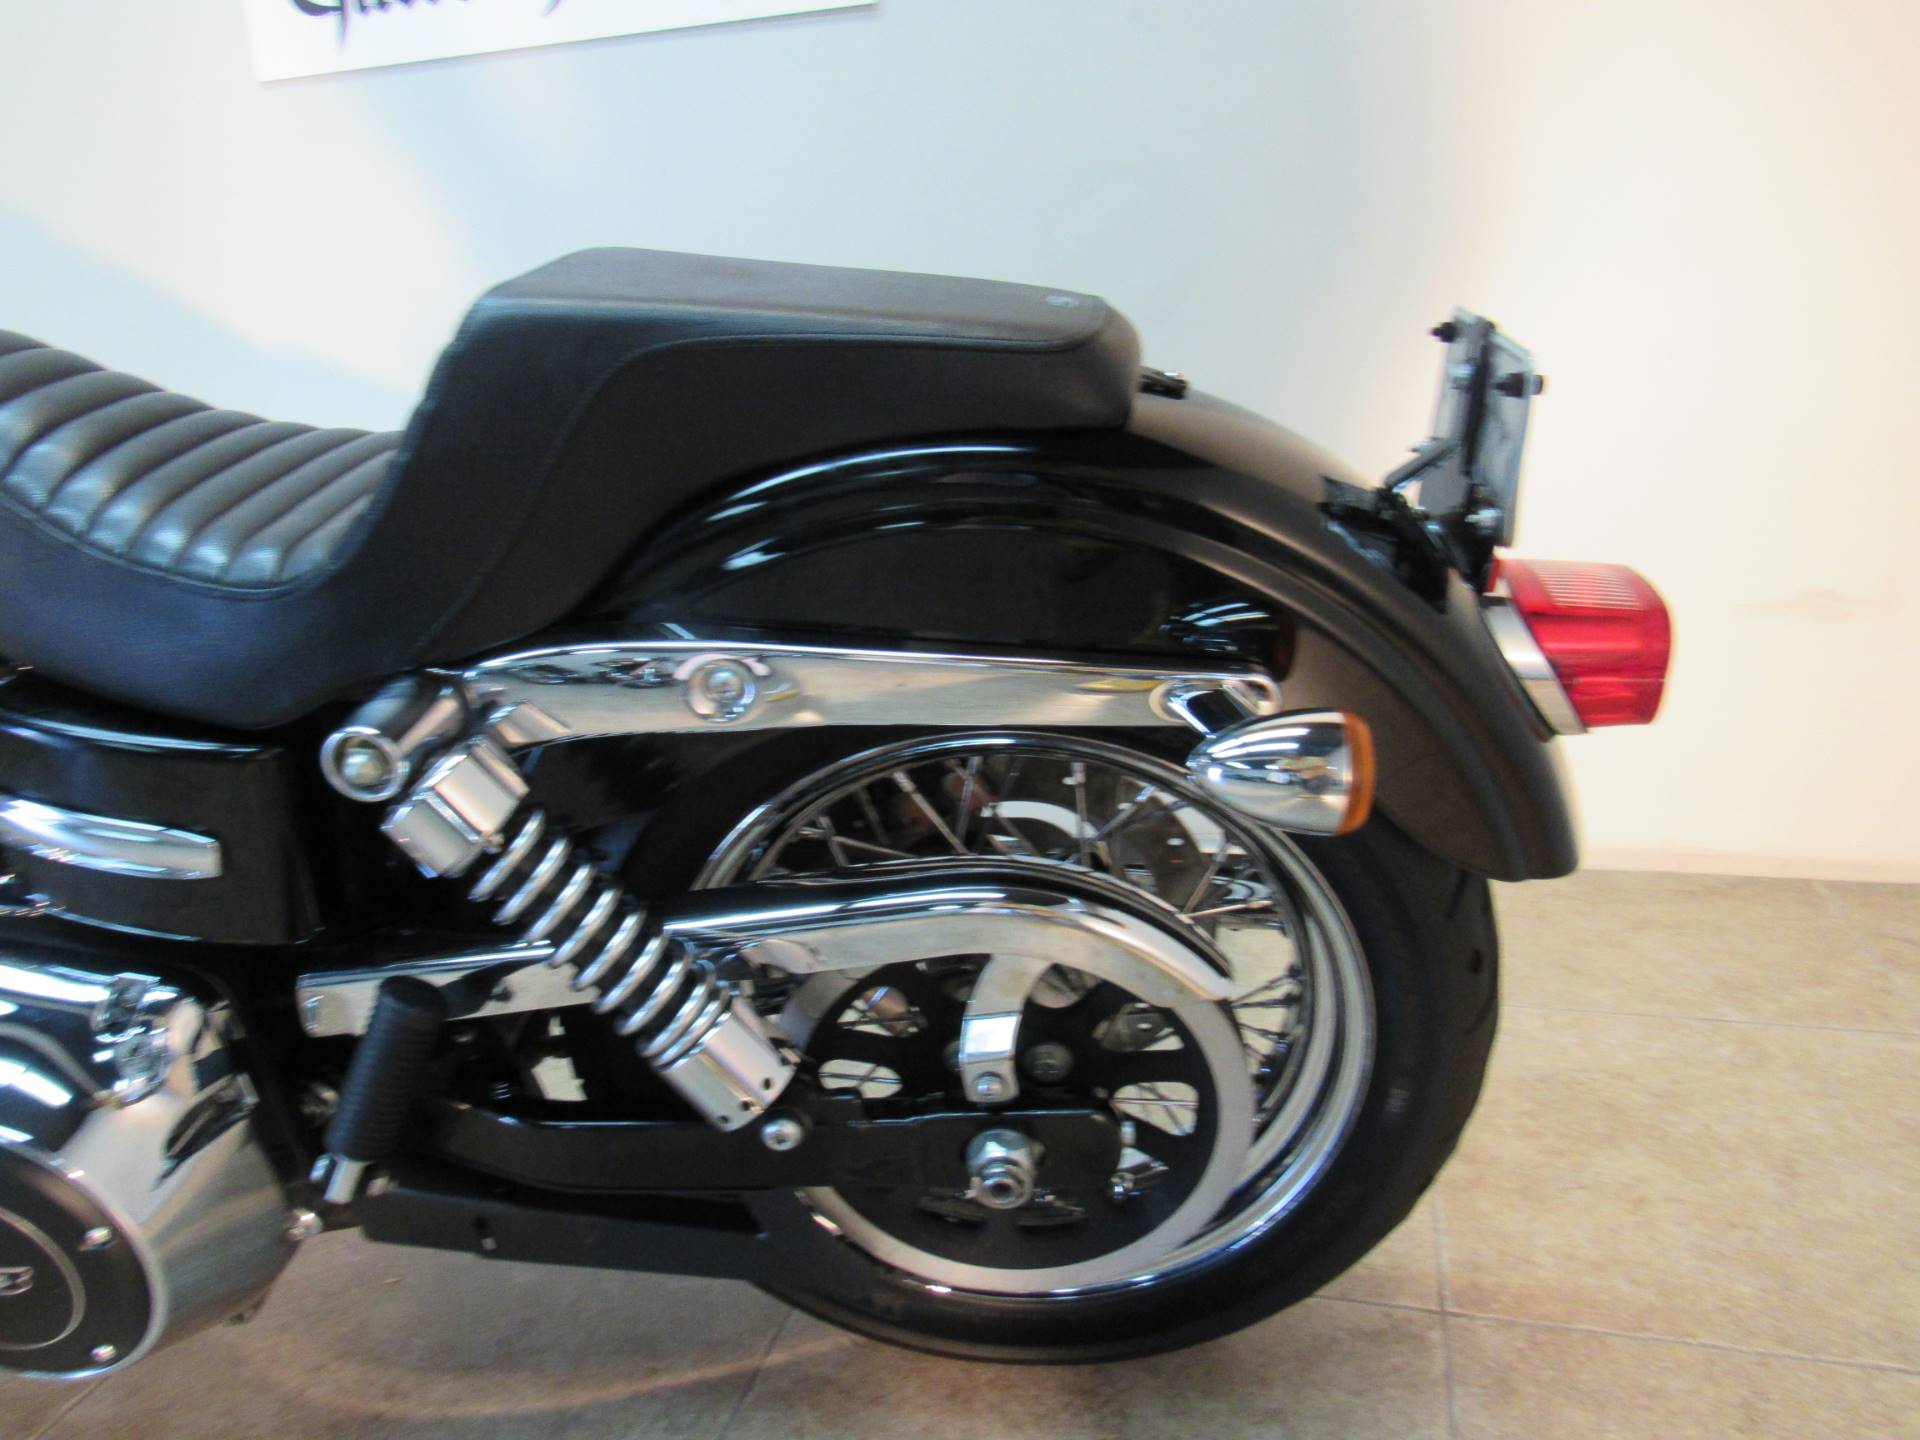 2012 Harley-Davidson Dyna® Super Glide® Custom in Temecula, California - Photo 28